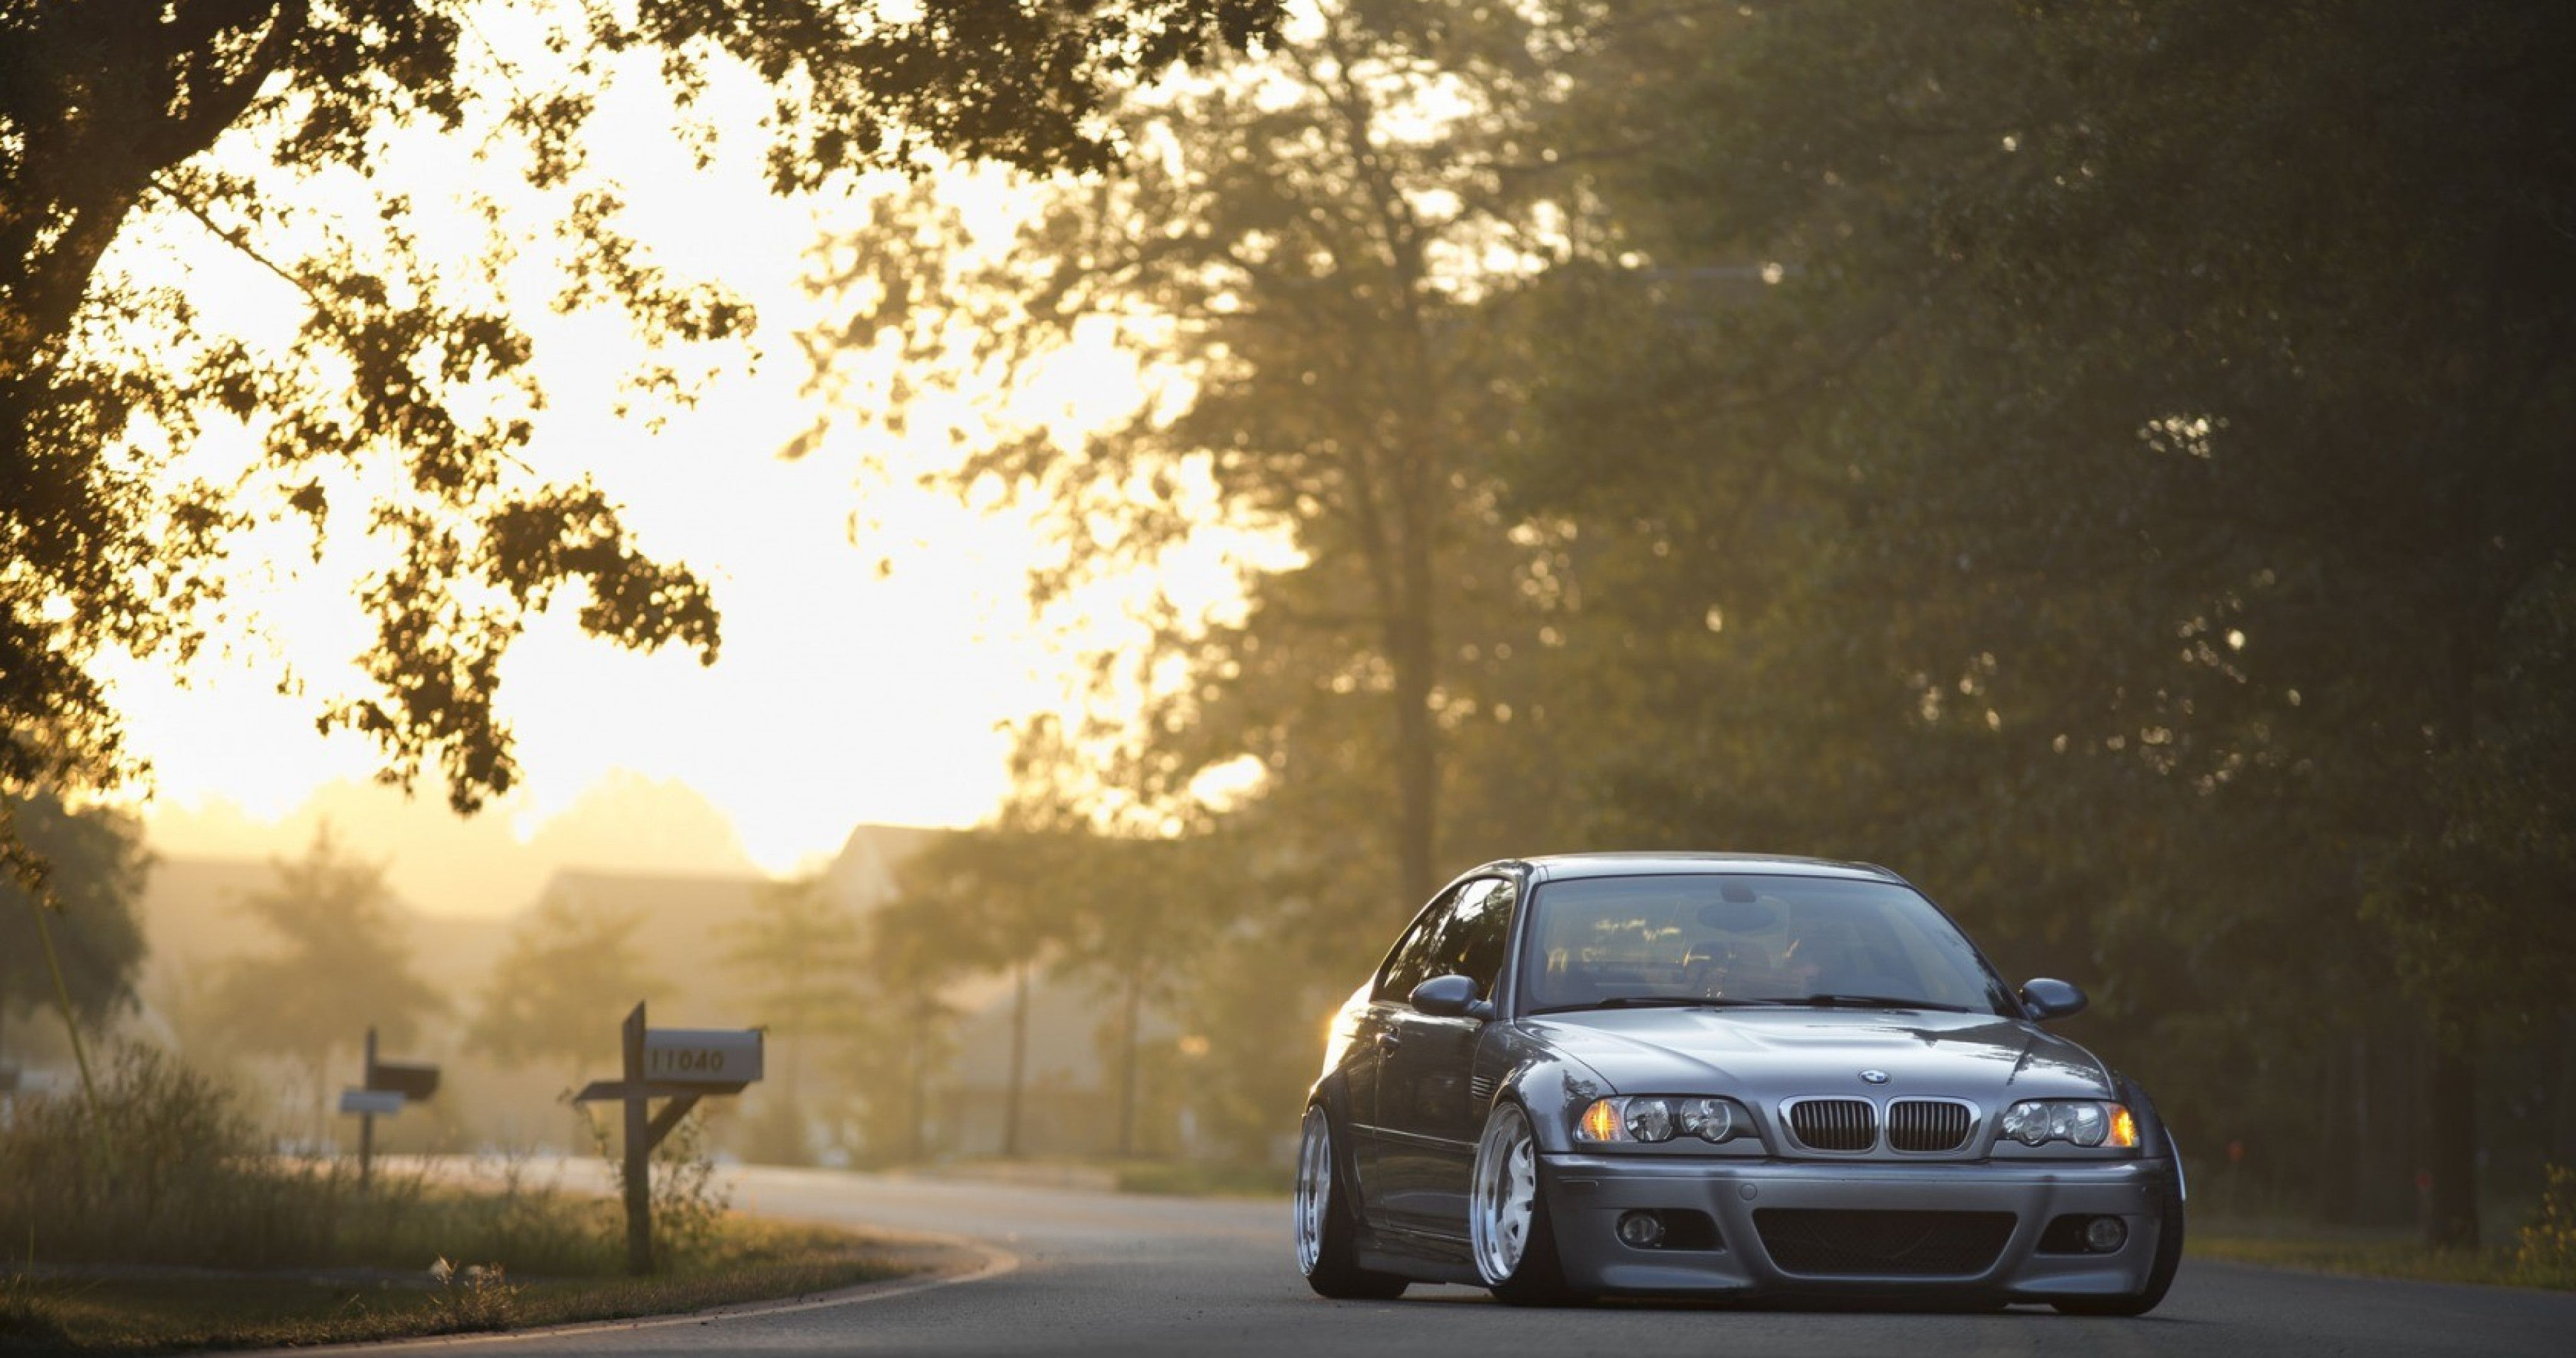 BMW E46 4K Wallpapers - Top Free BMW E46 4K Backgrounds ...